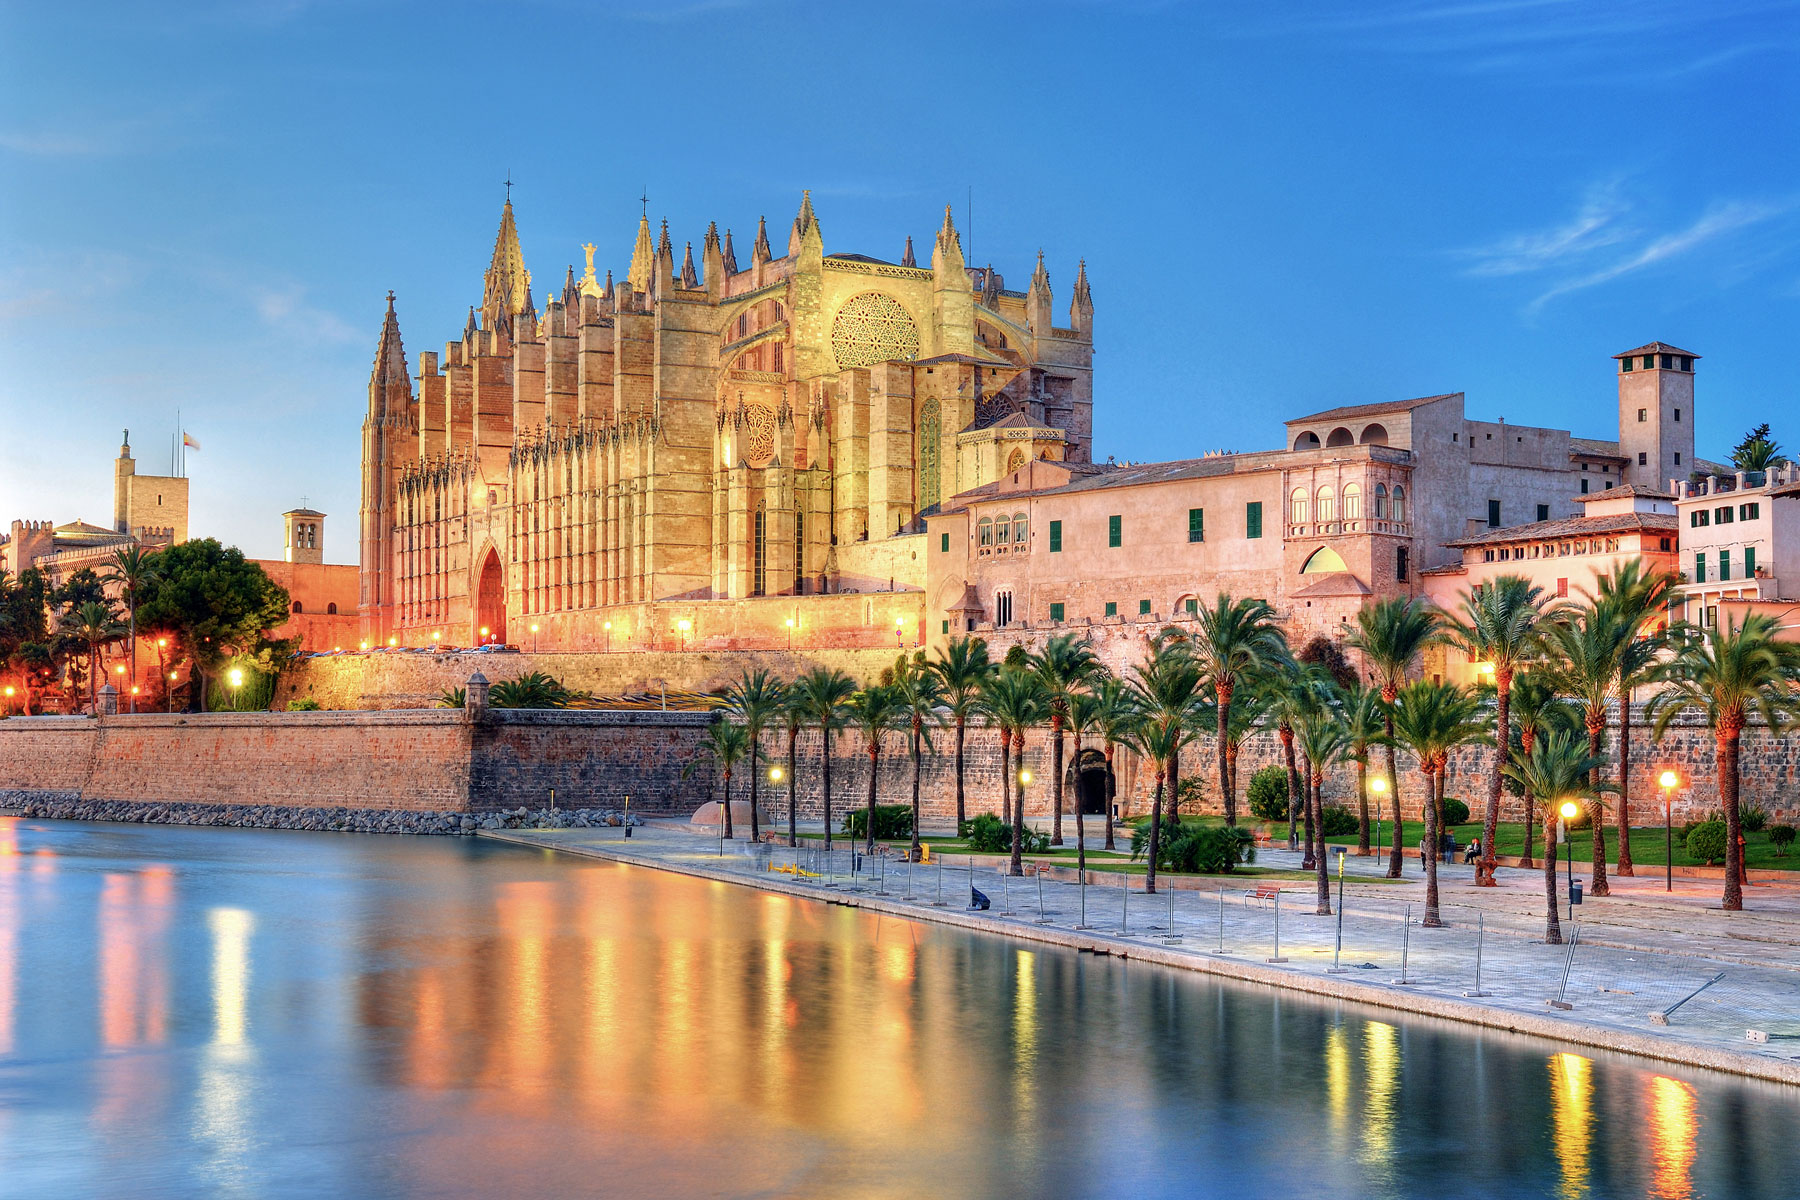 Balearic Islands - Palma De Mallorca - Spain - FrizeMedia